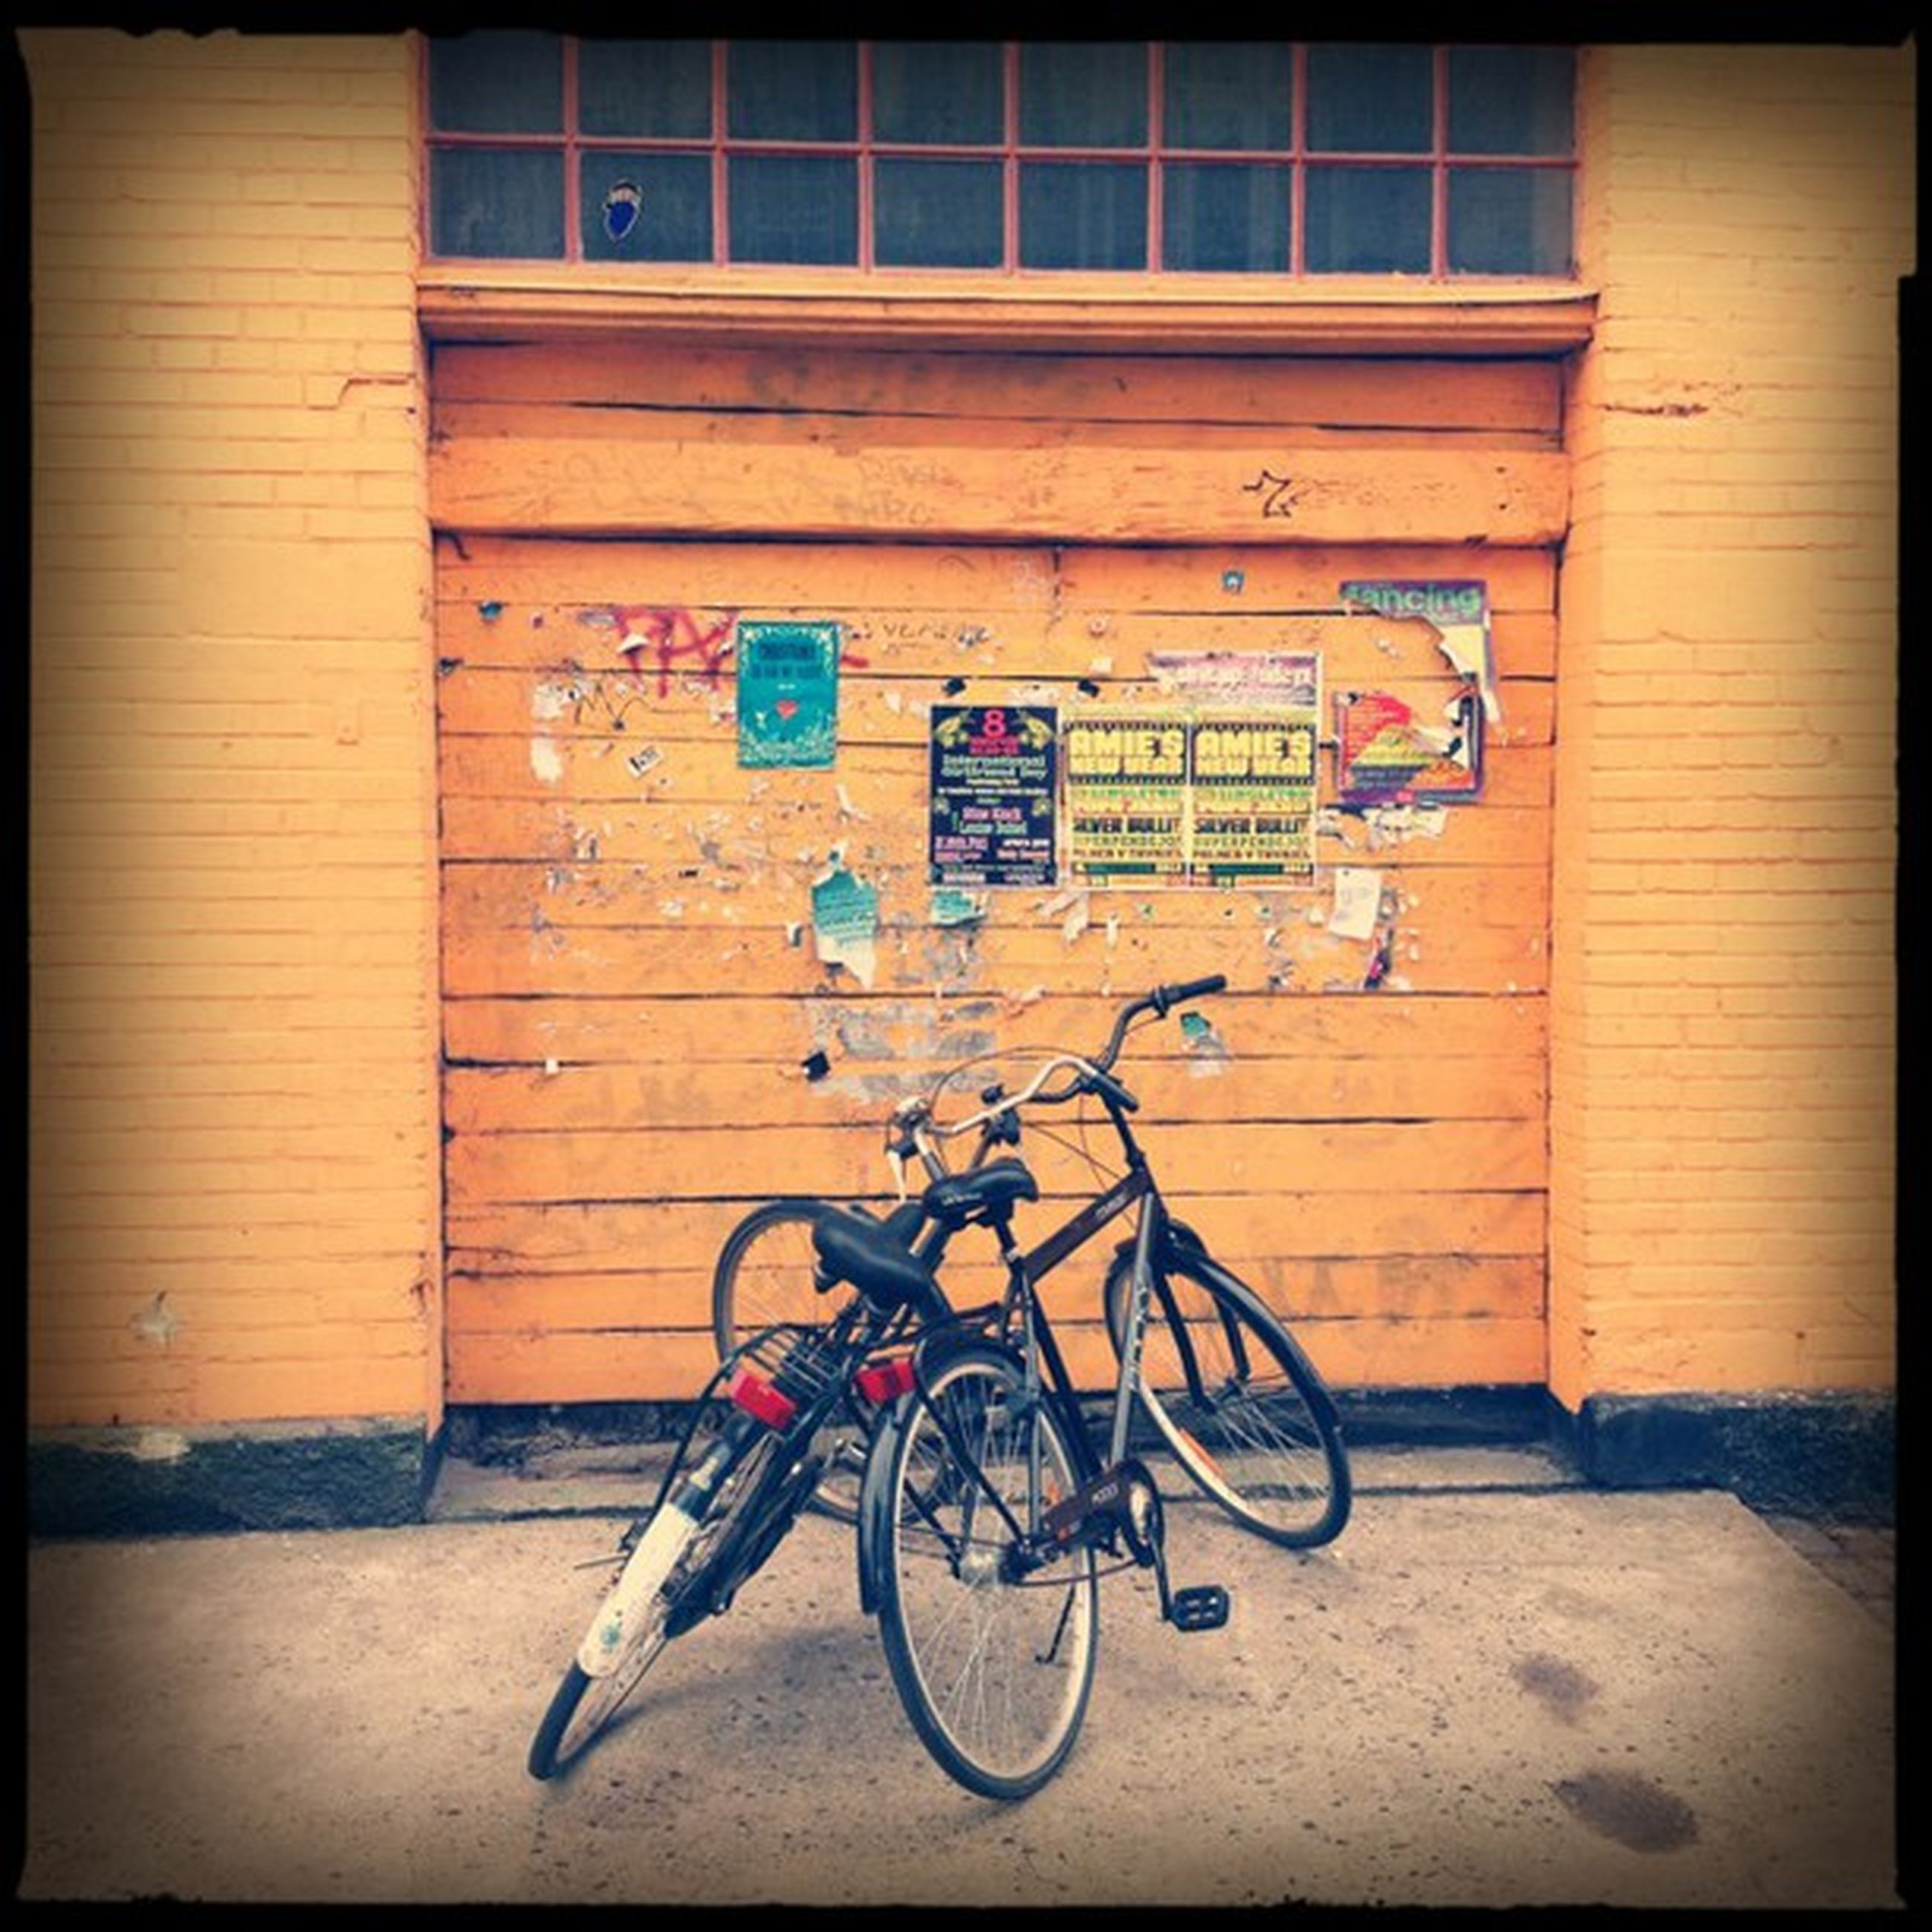 bicycle, transportation, architecture, mode of transport, stationary, land vehicle, building exterior, parked, built structure, parking, text, wall - building feature, graffiti, western script, wall, communication, auto post production filter, sidewalk, street, day